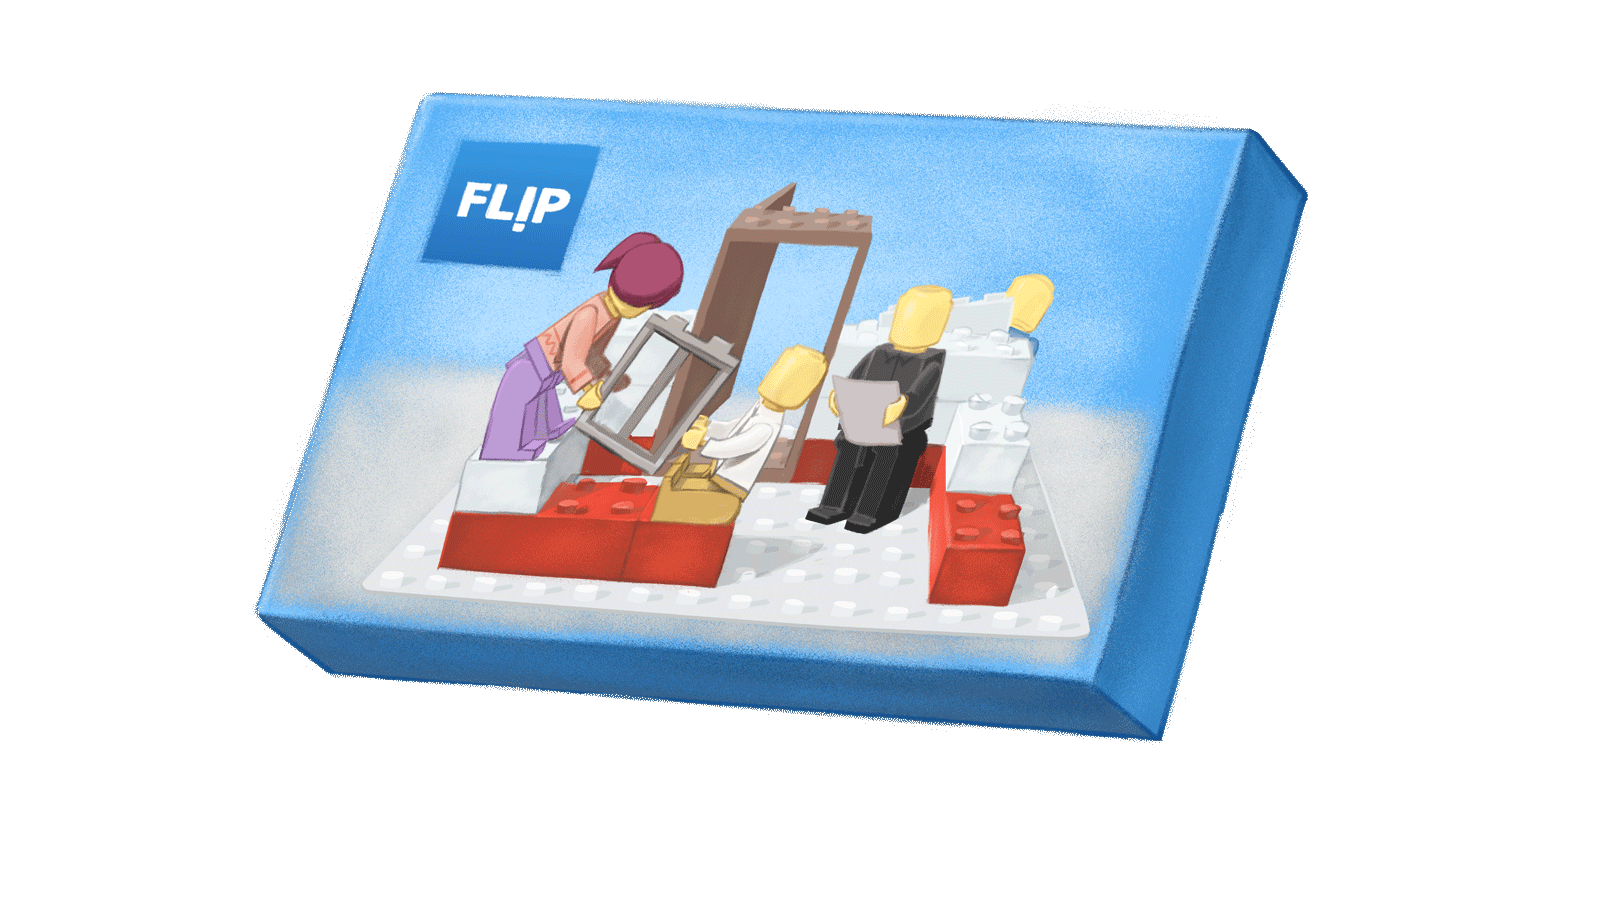 A lego-like package for Flip